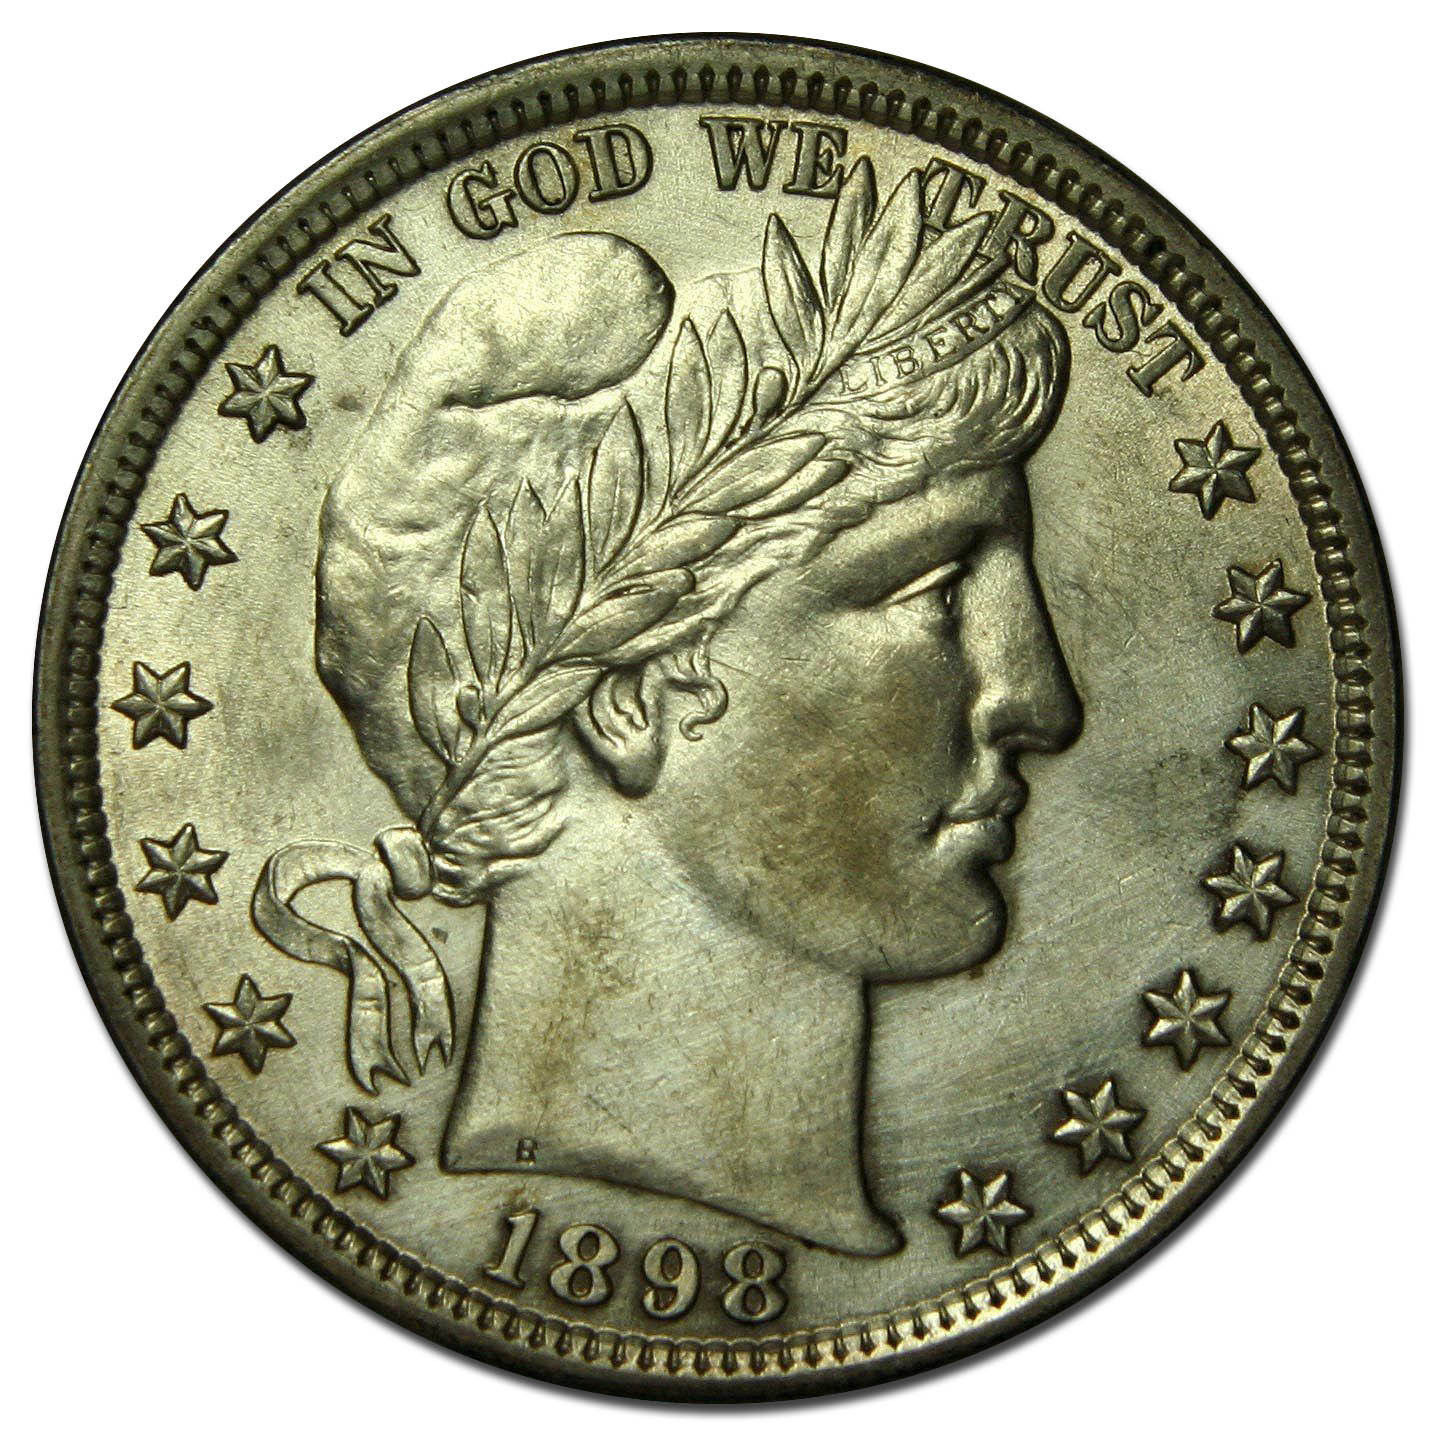 1898 Liberty Barber Head Half Dollar 50¢ Silver Coin Lot MZ 2614